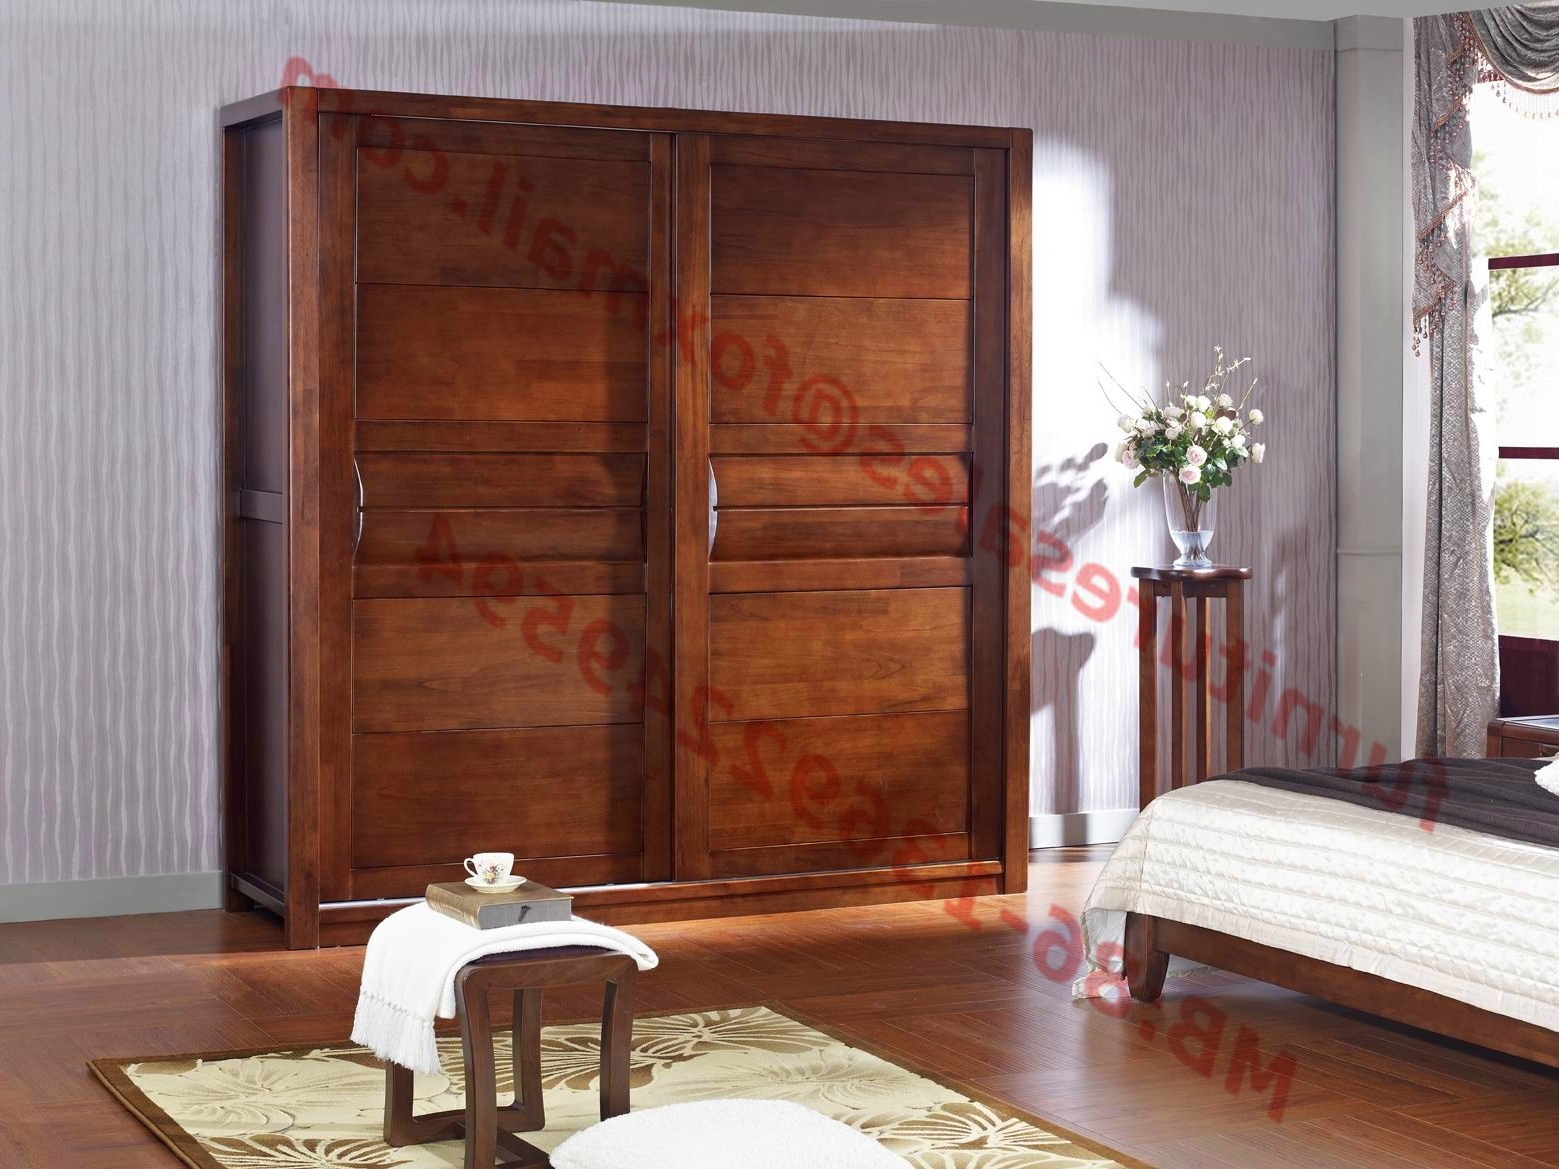 Preferred Doors Wardrobe In Solid Wood Bedroom Furniture Sets Regarding Solid Wood Fitted Wardrobes (View 5 of 15)